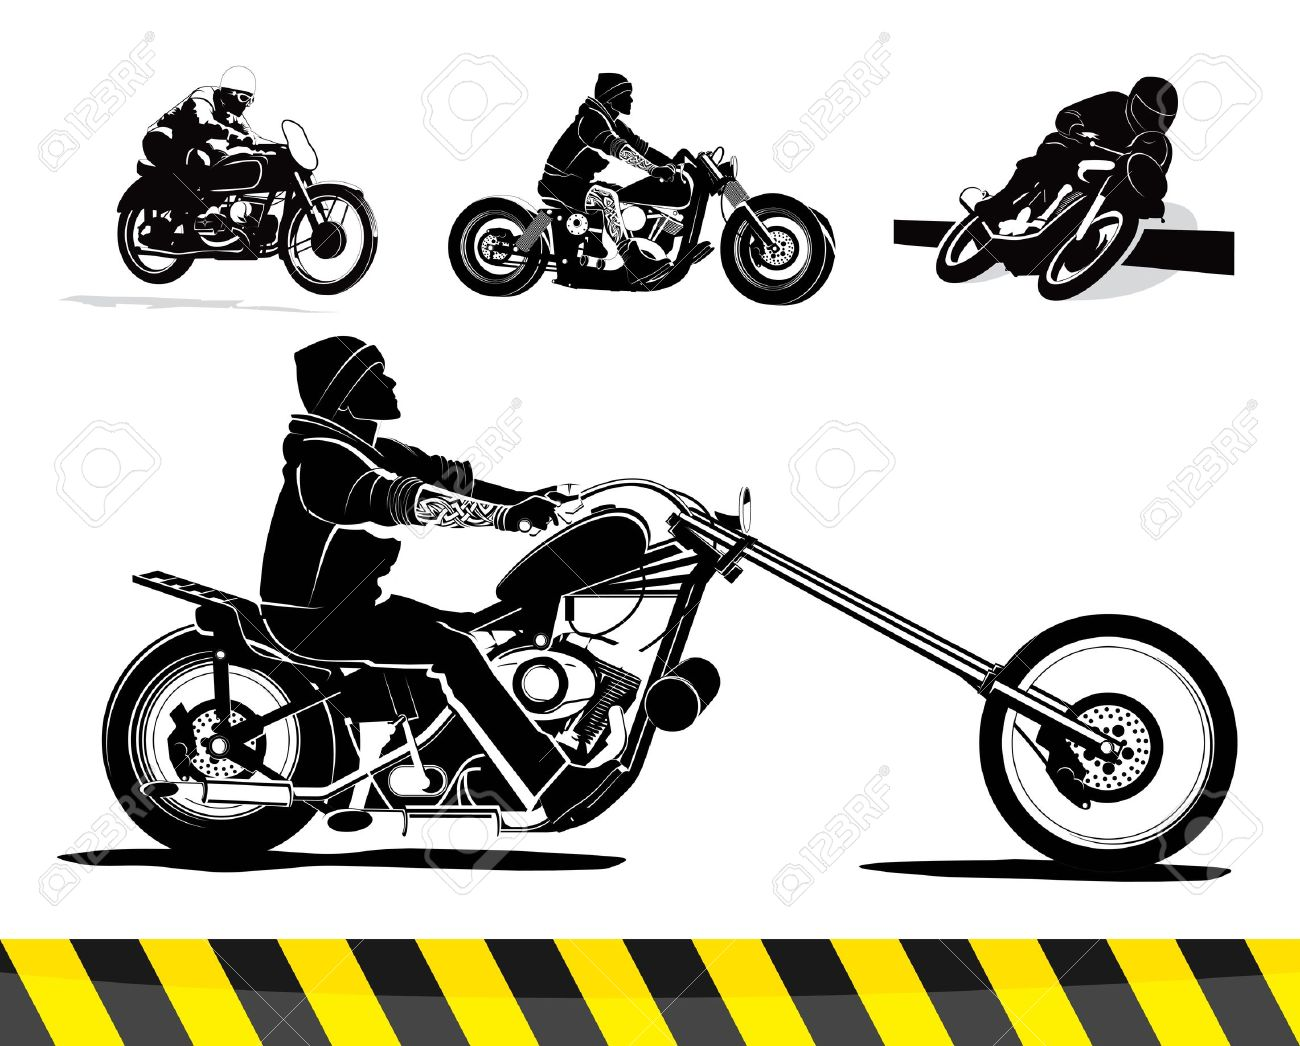 Vintage Motorcycle Vector Background Illustration Royalty Free.